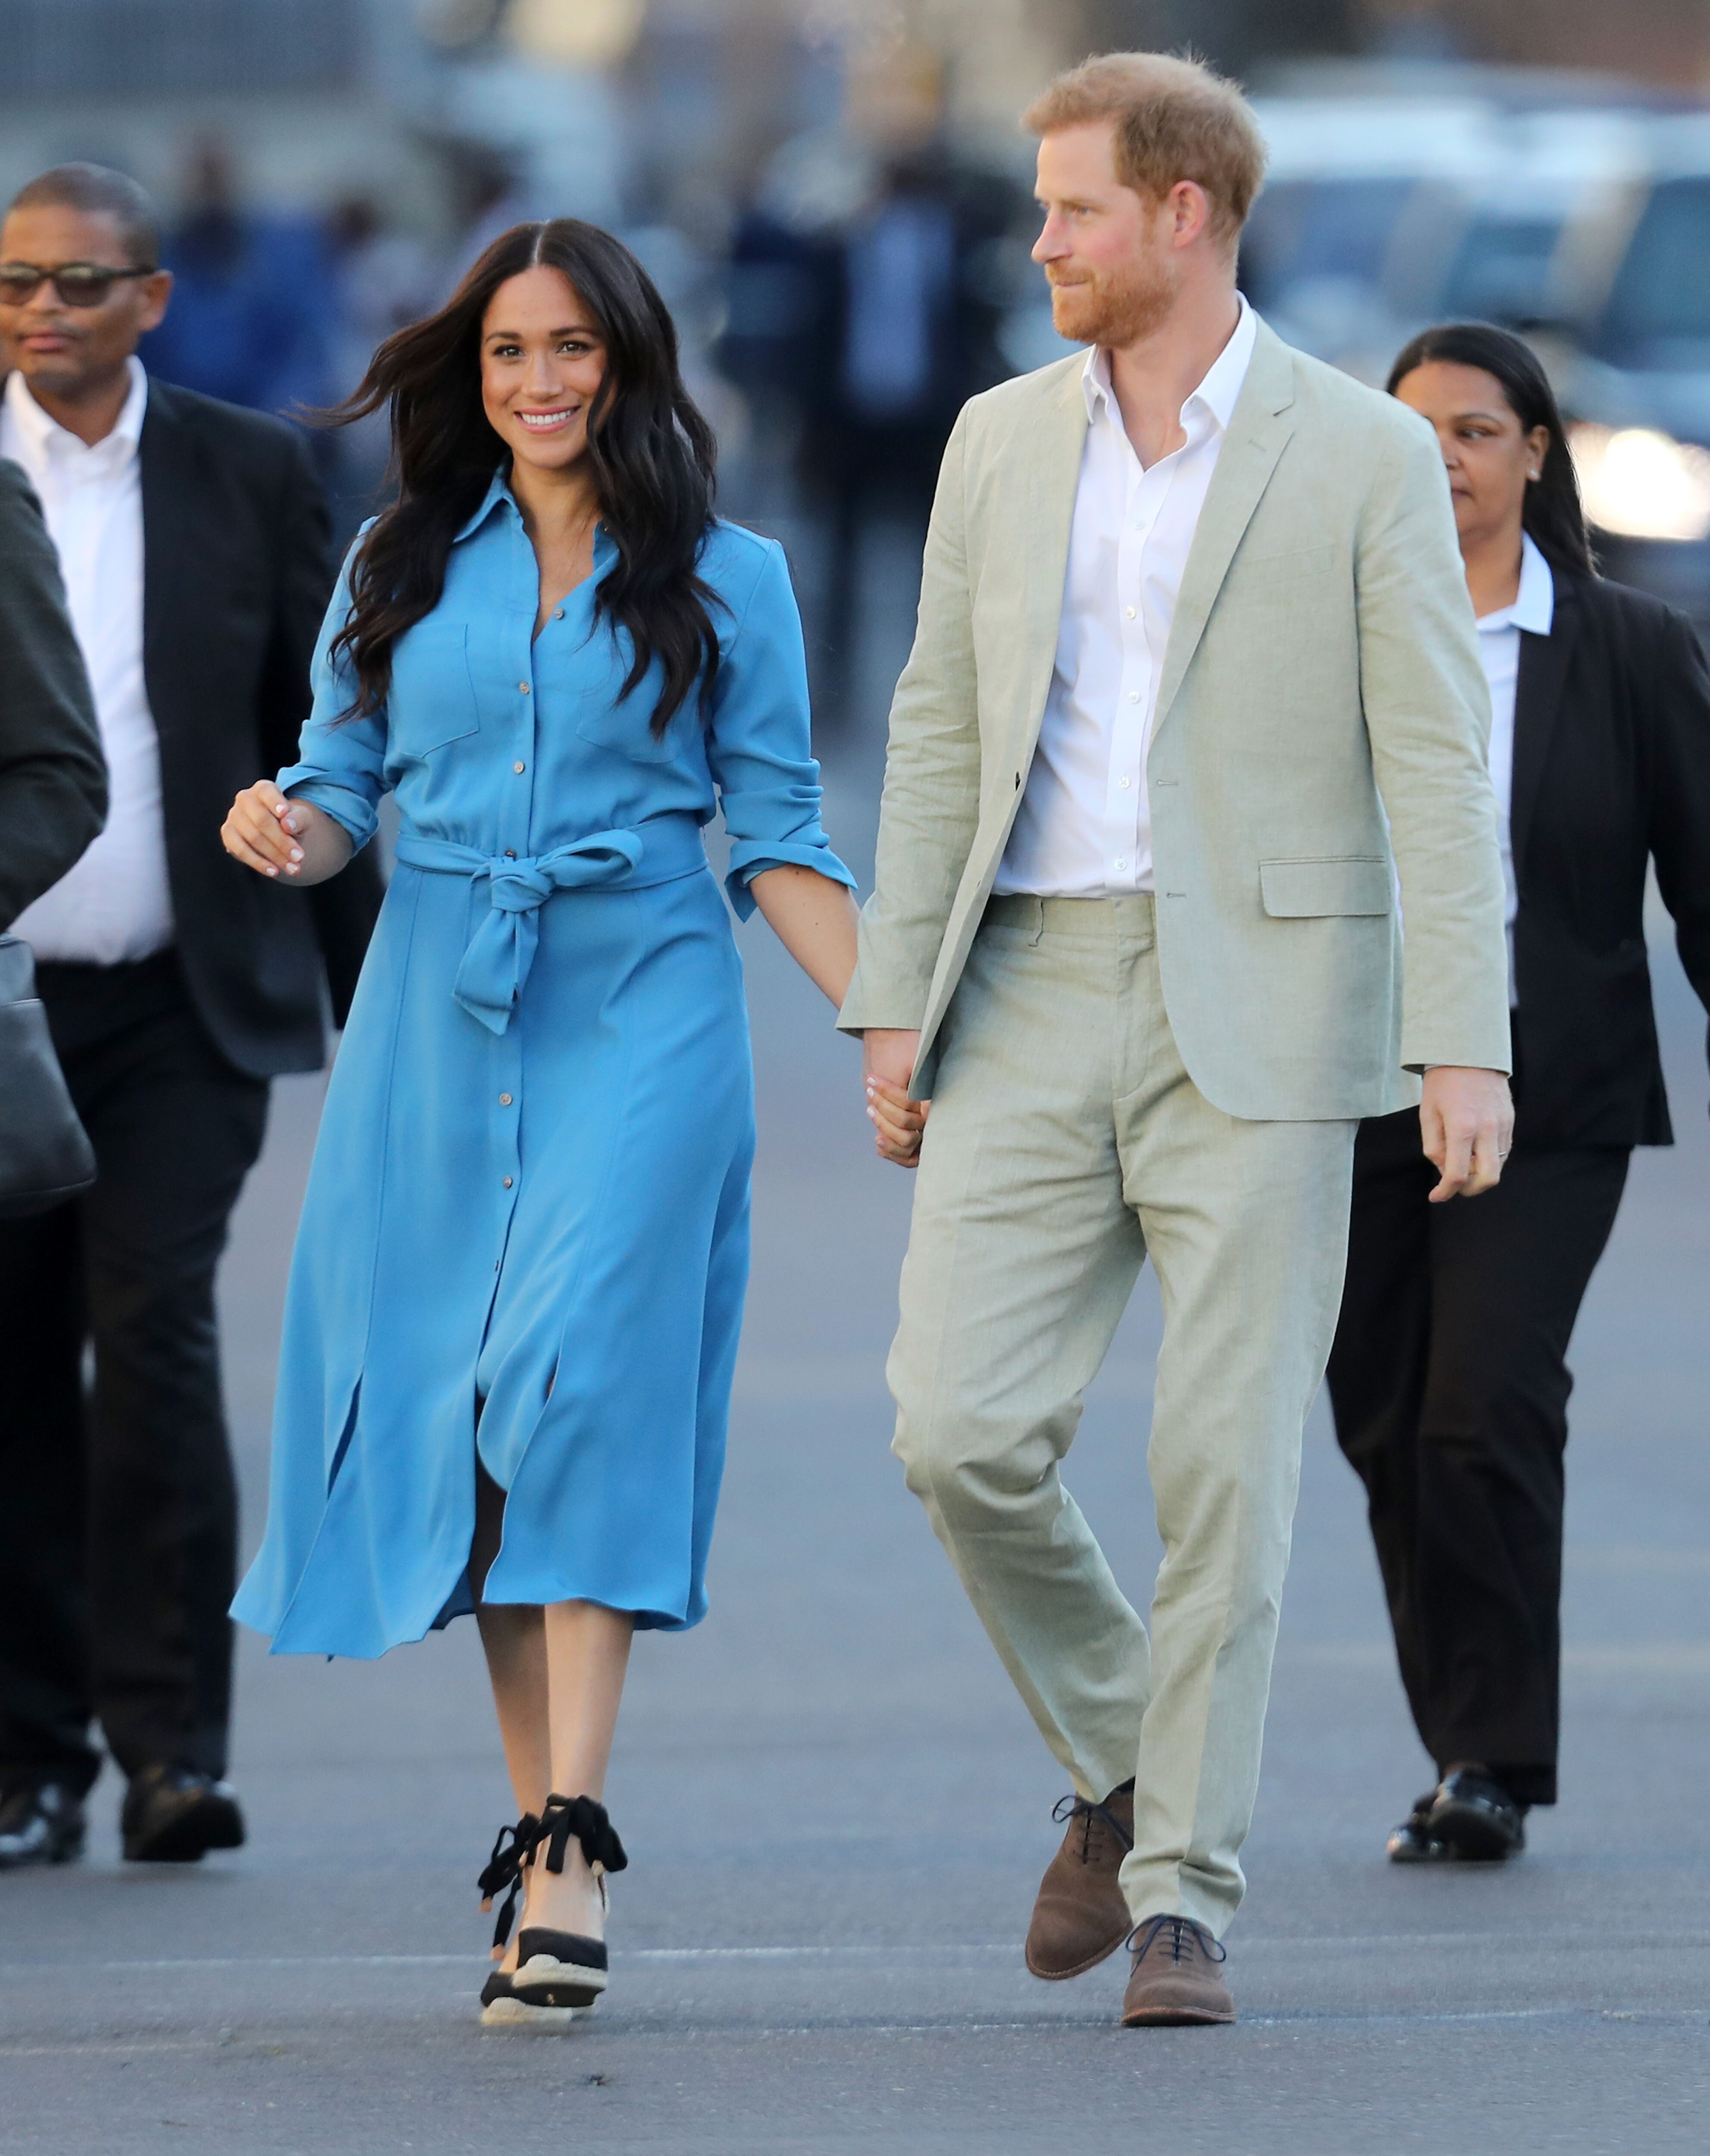 Meghan Markle and Prince Harry during their South Africa tour. | Source: Getty Images